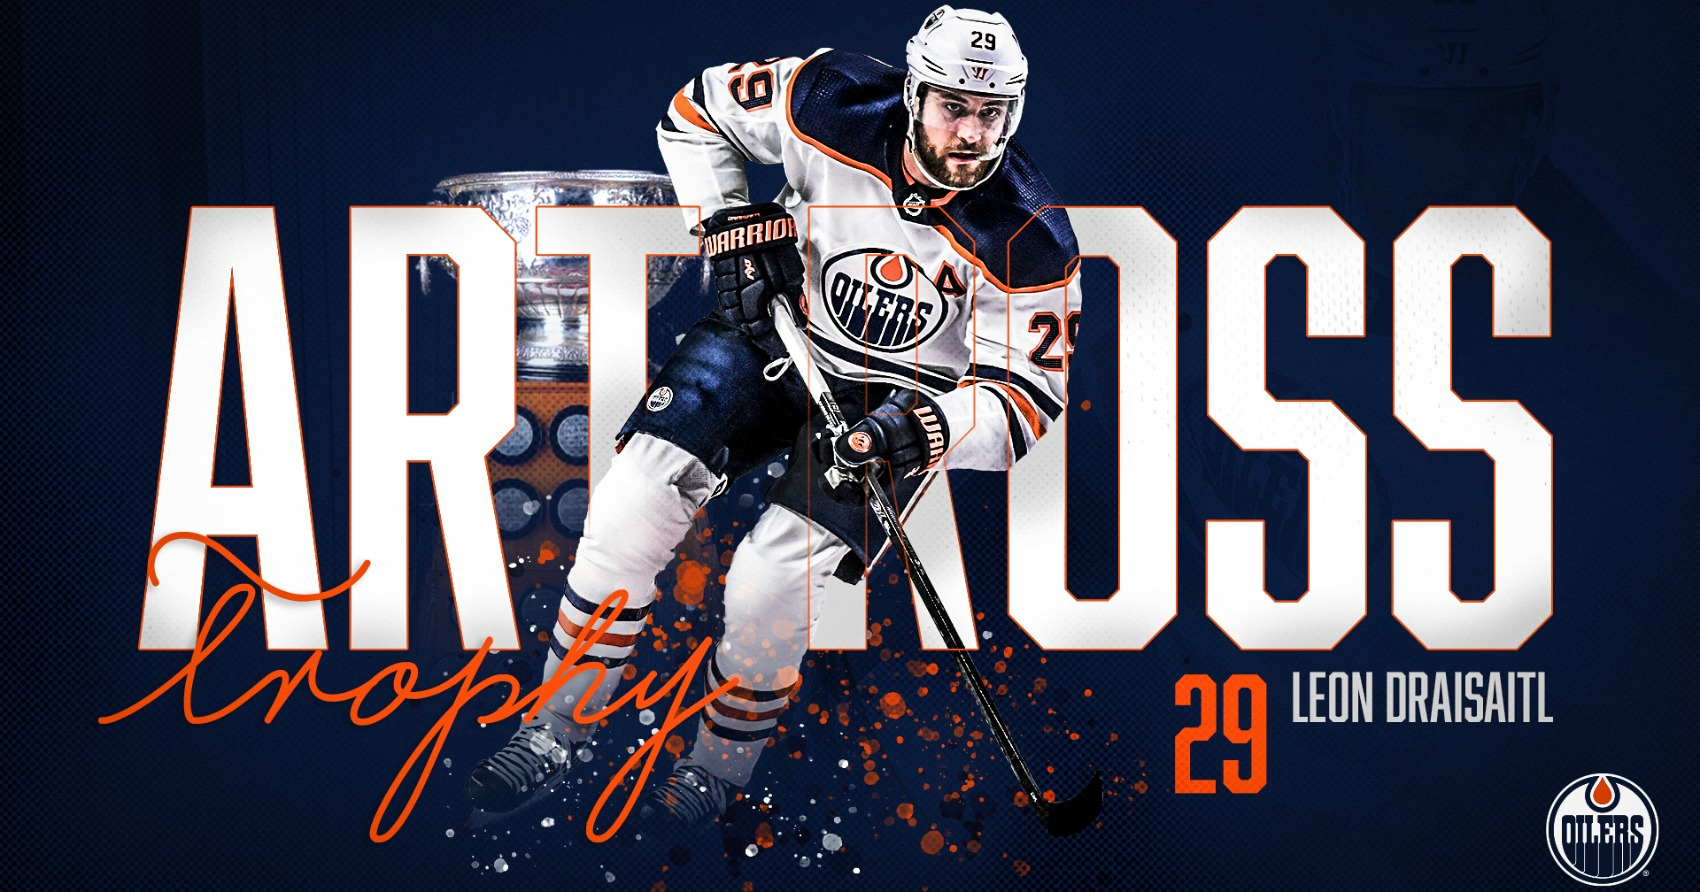 Former Rocket Leon Draisaitl has officially won the Art Ross Trophy